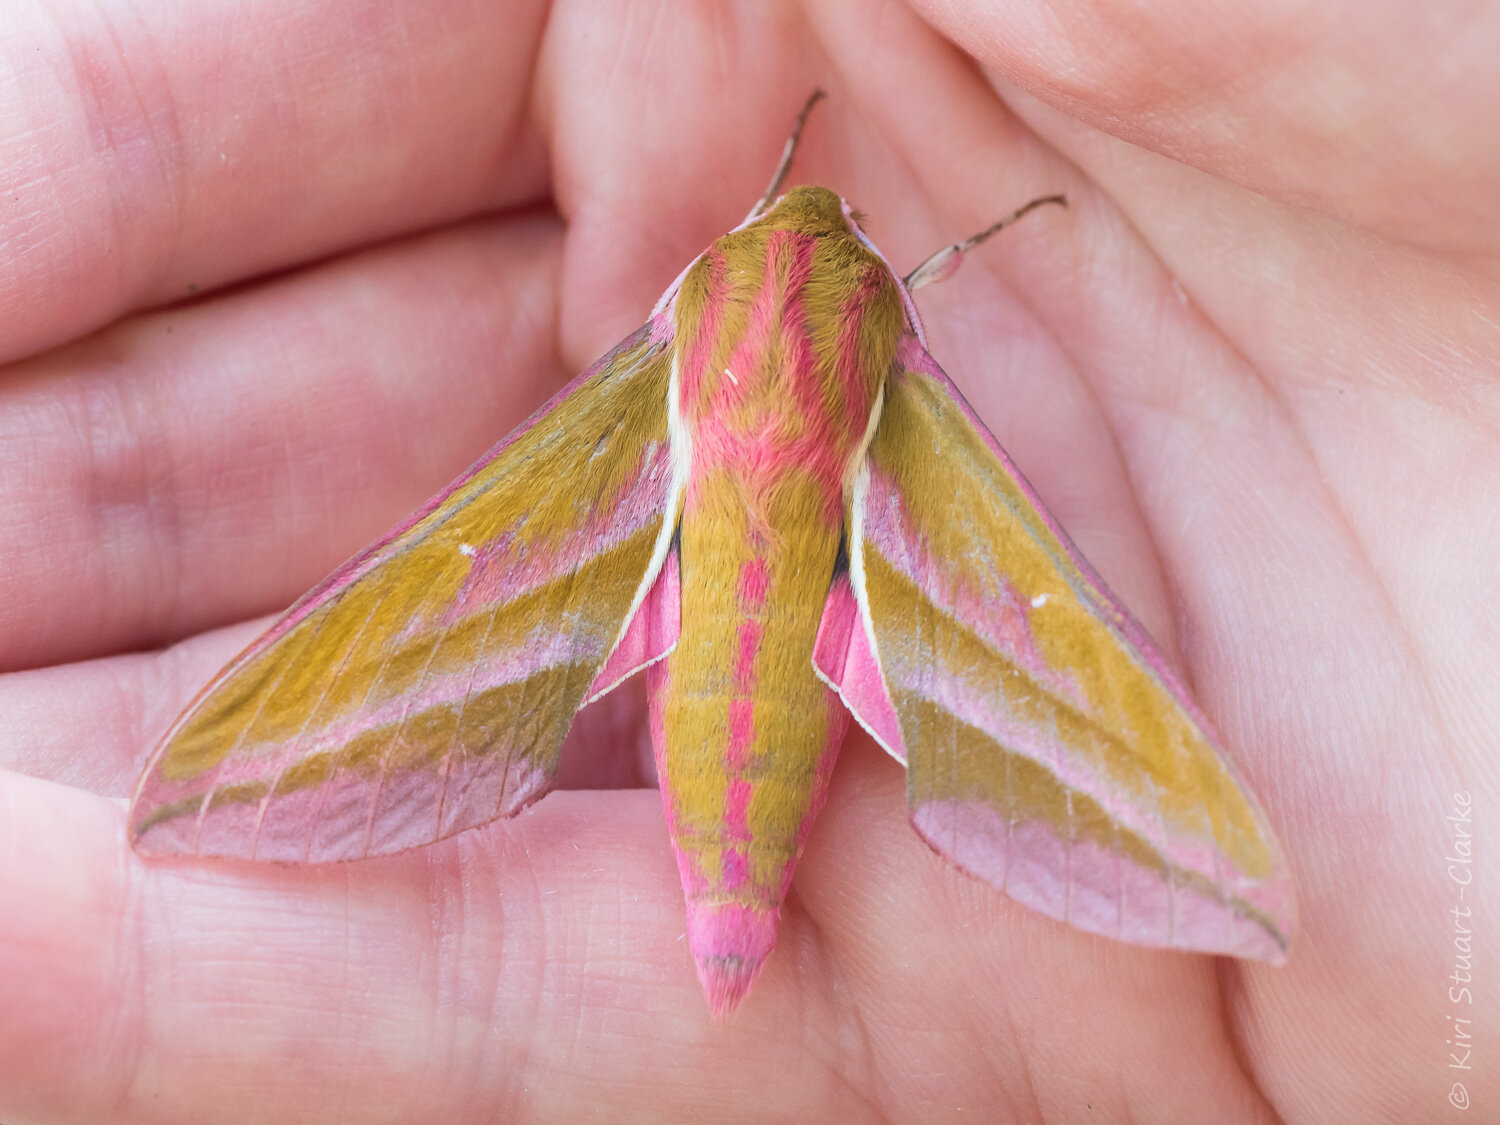 Elephant Hawkmoths use Purple Loosestrife as a caterpillar host plant and have magenta markings